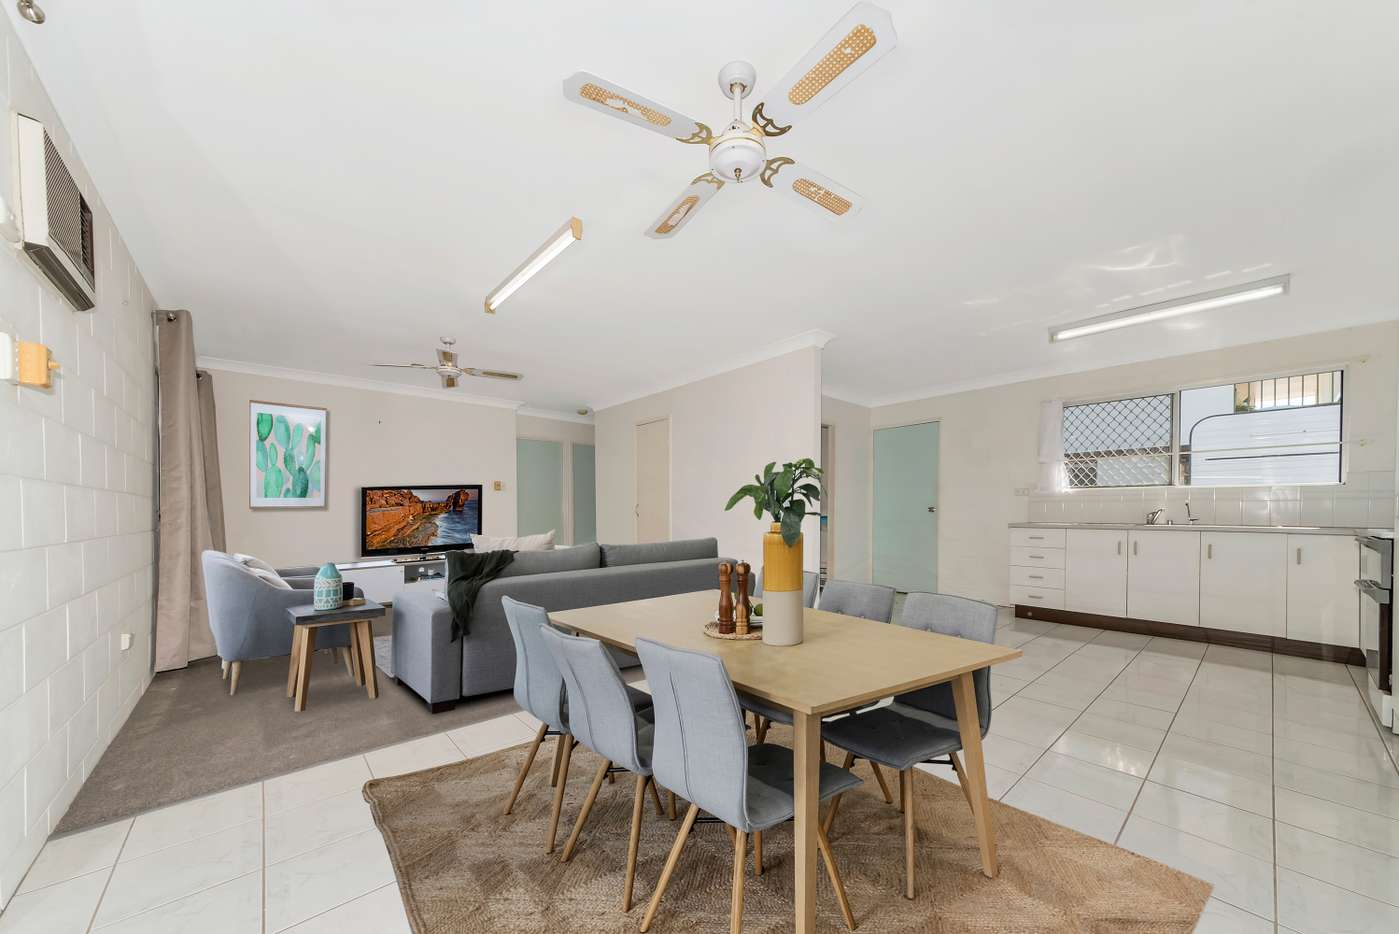 Main view of Homely house listing, 30 Deloraine Street, Thuringowa Central, QLD 4817